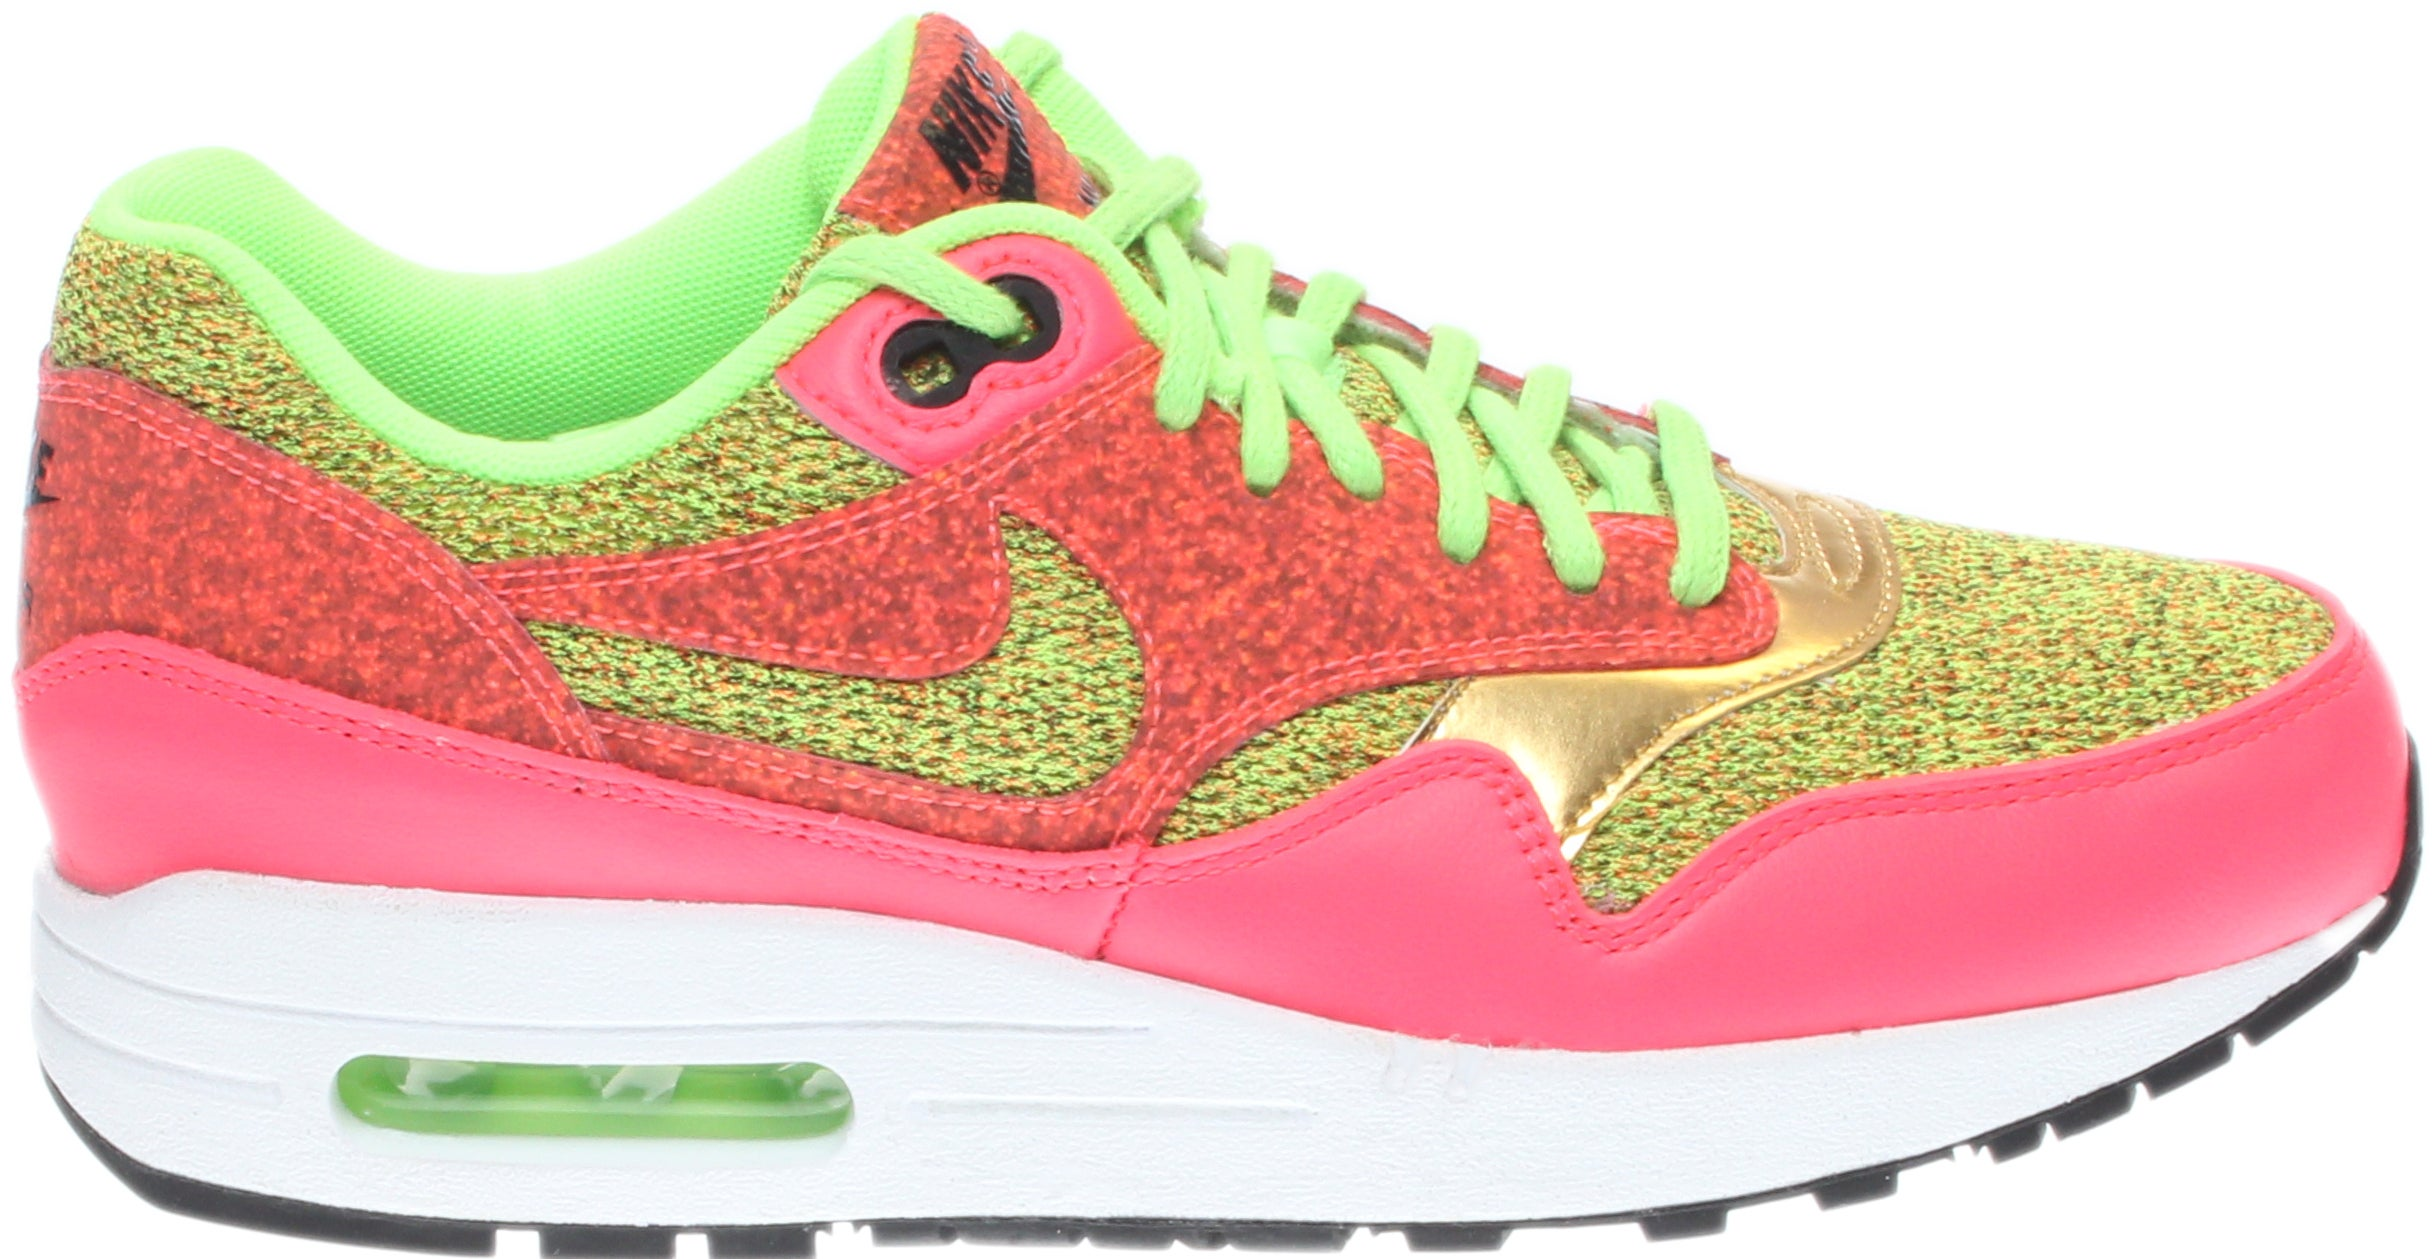 Nike Air Max 1 SE Pink - Womens  - Size 6.5